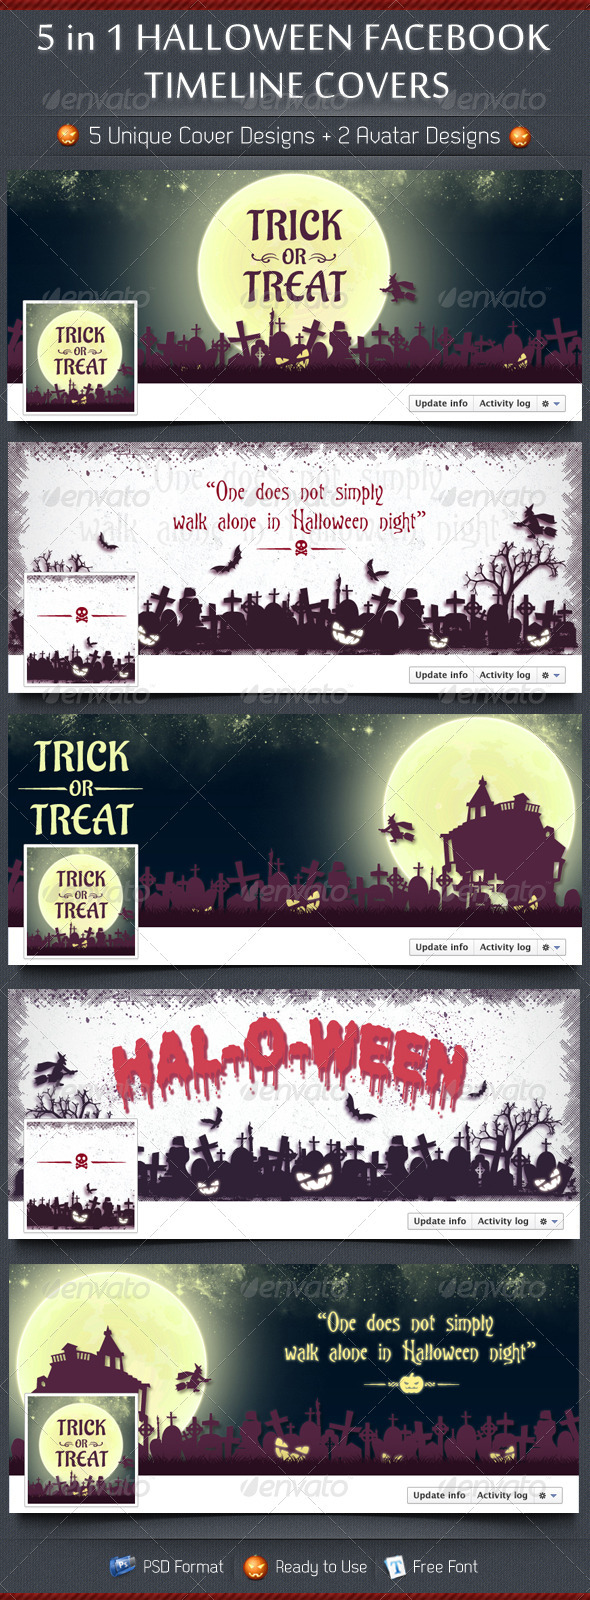 GraphicRiver 5 in 1 Halloween FB Timeline Covers 3298484